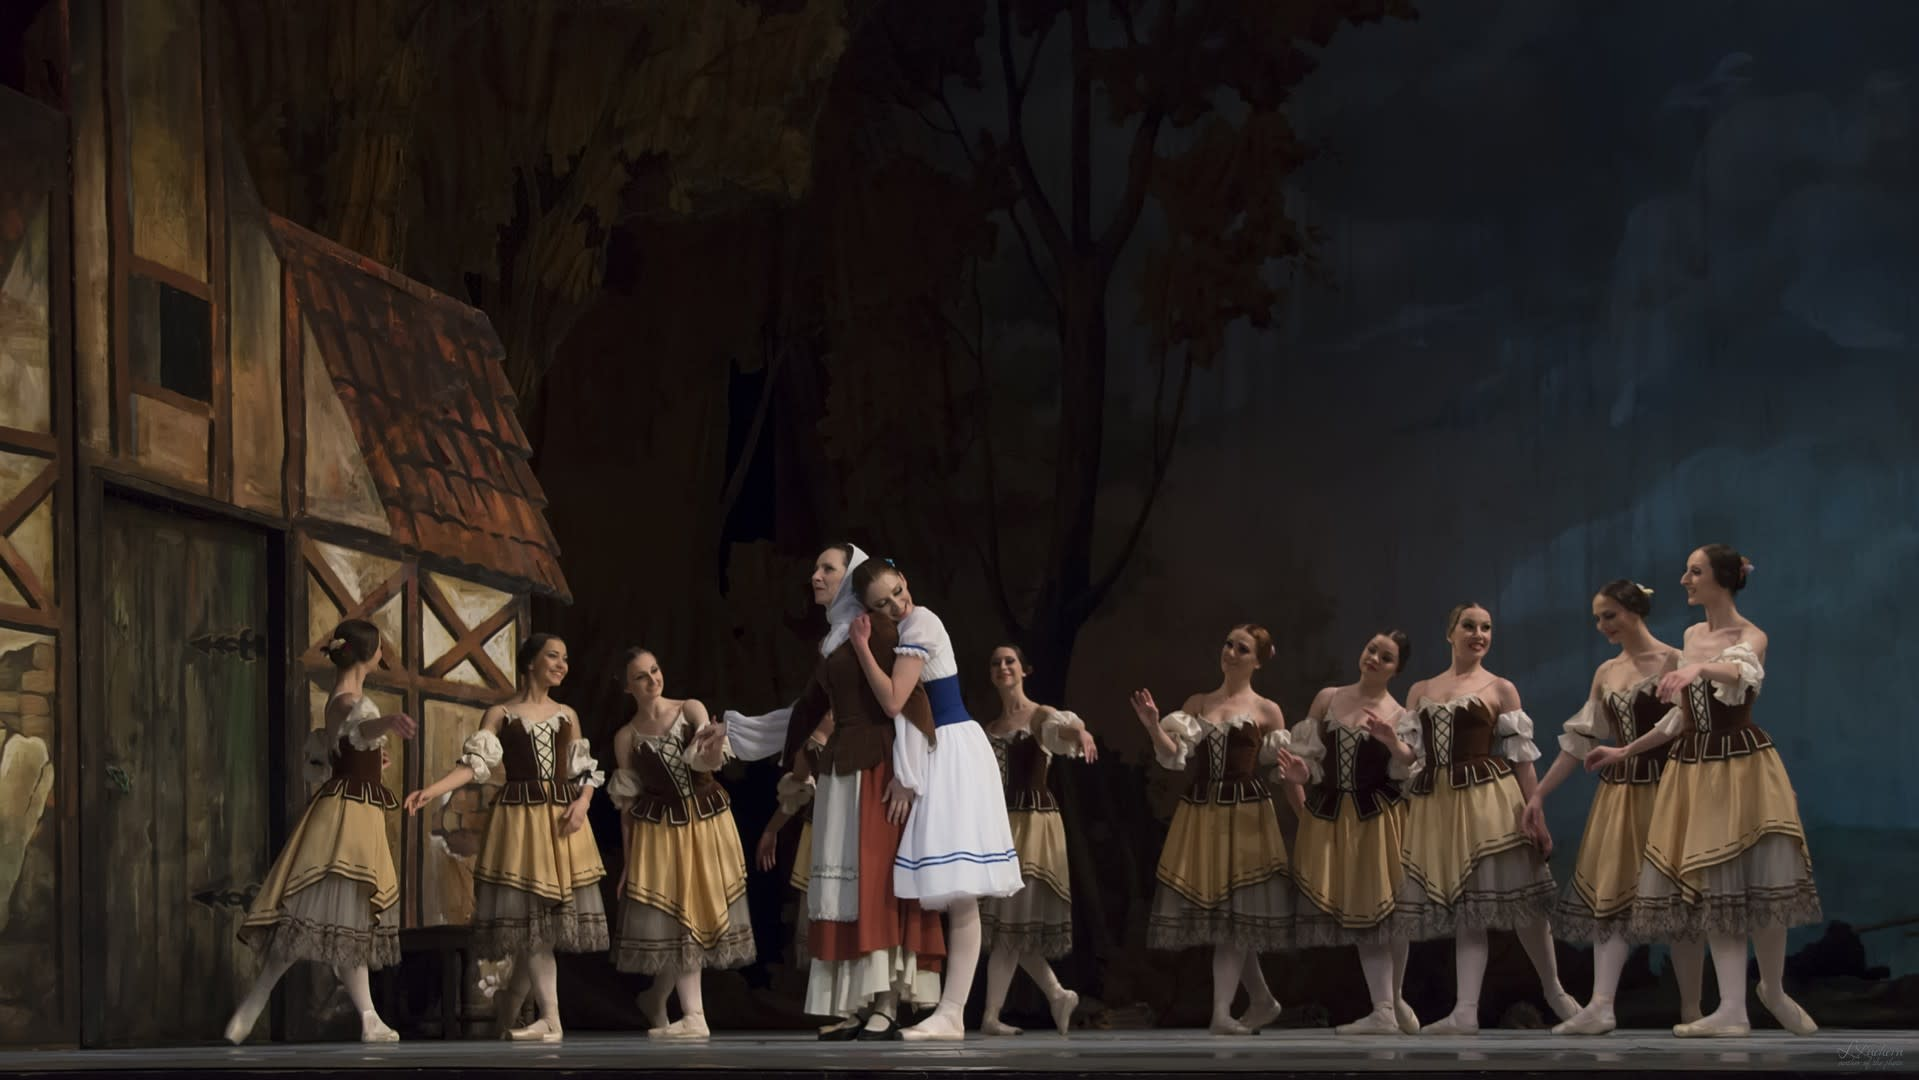 The Great Russian Ballet presents Giselle